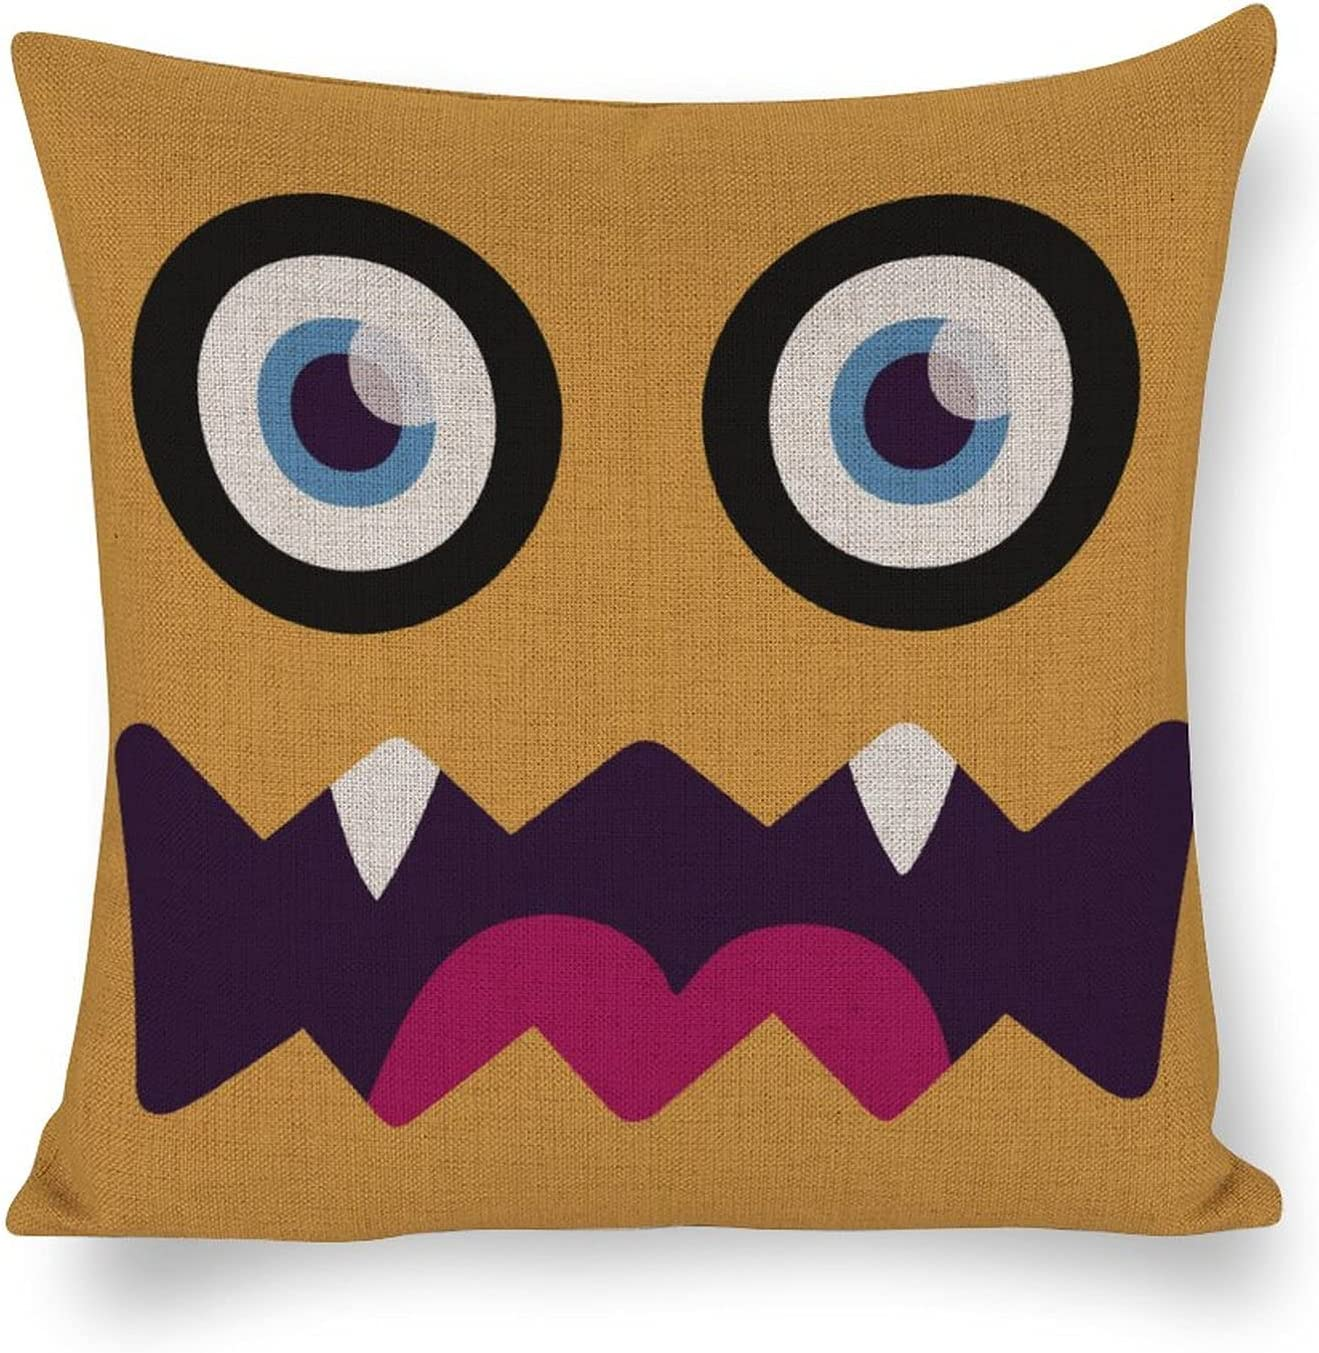 Challenge the lowest price Halloween Crushed Pillow Stuffing Cute Max 76% OFF Cushion Pi Pillows Accent